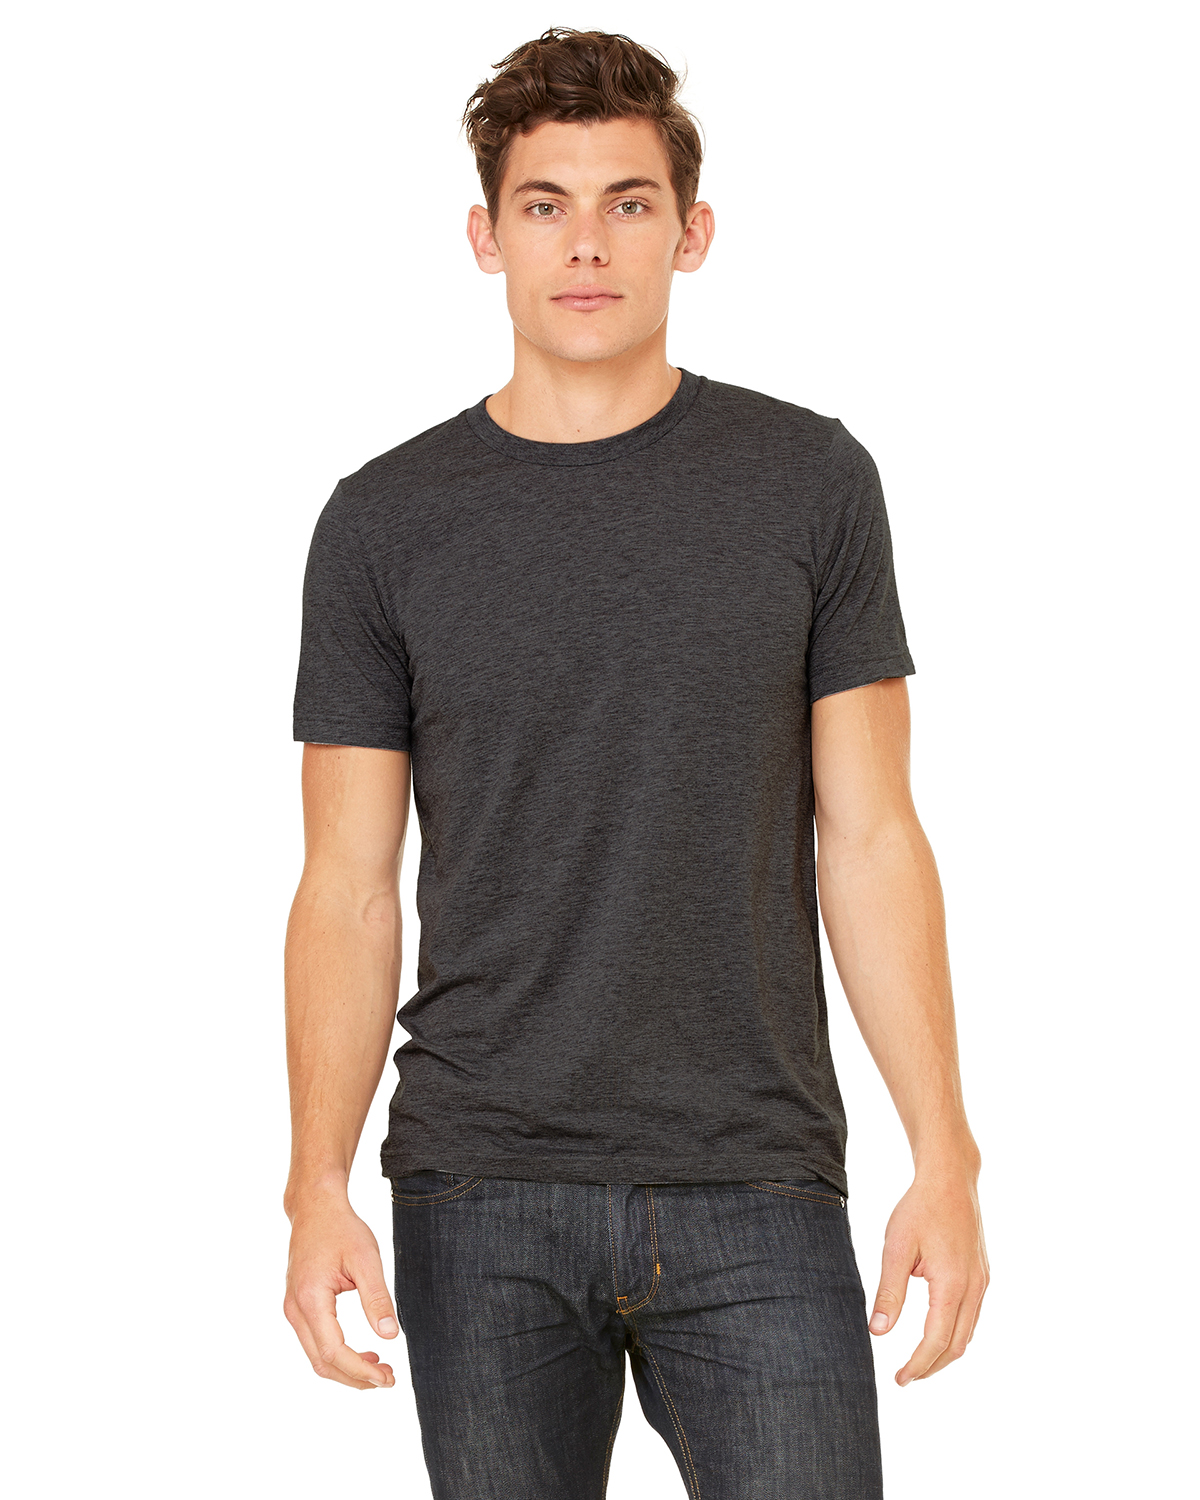 Canvas 3413 Howard Tri-blend Short Sleeve T-Shirt